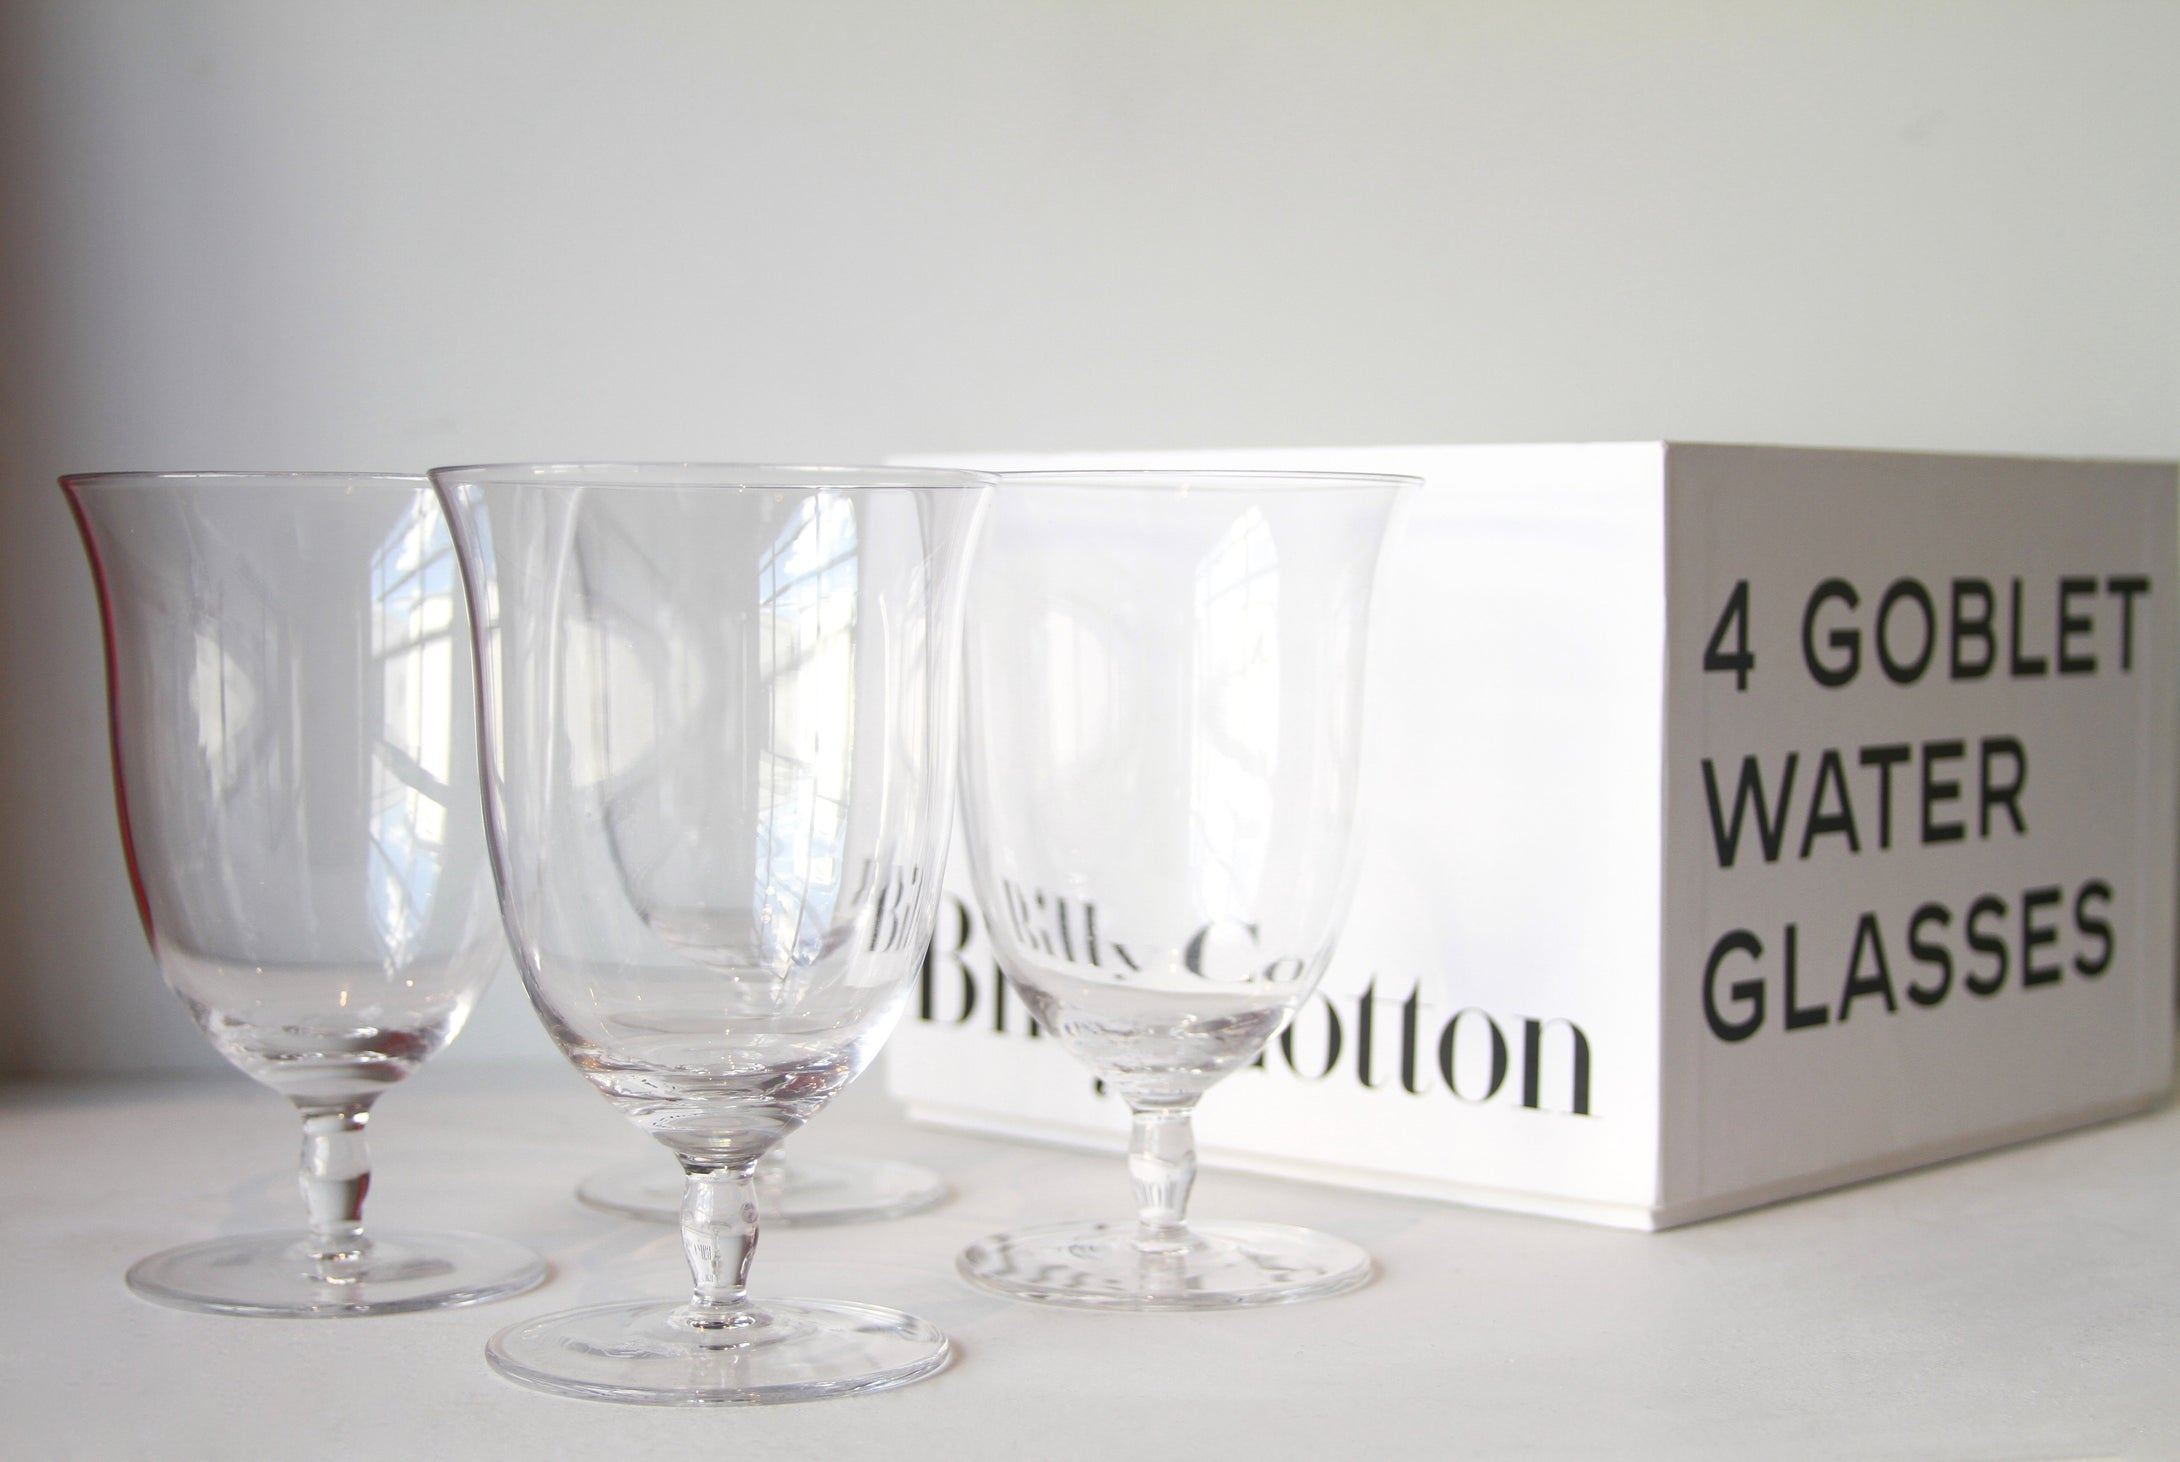 Billy Cotton Goblet Water Glasses Clear Set/4